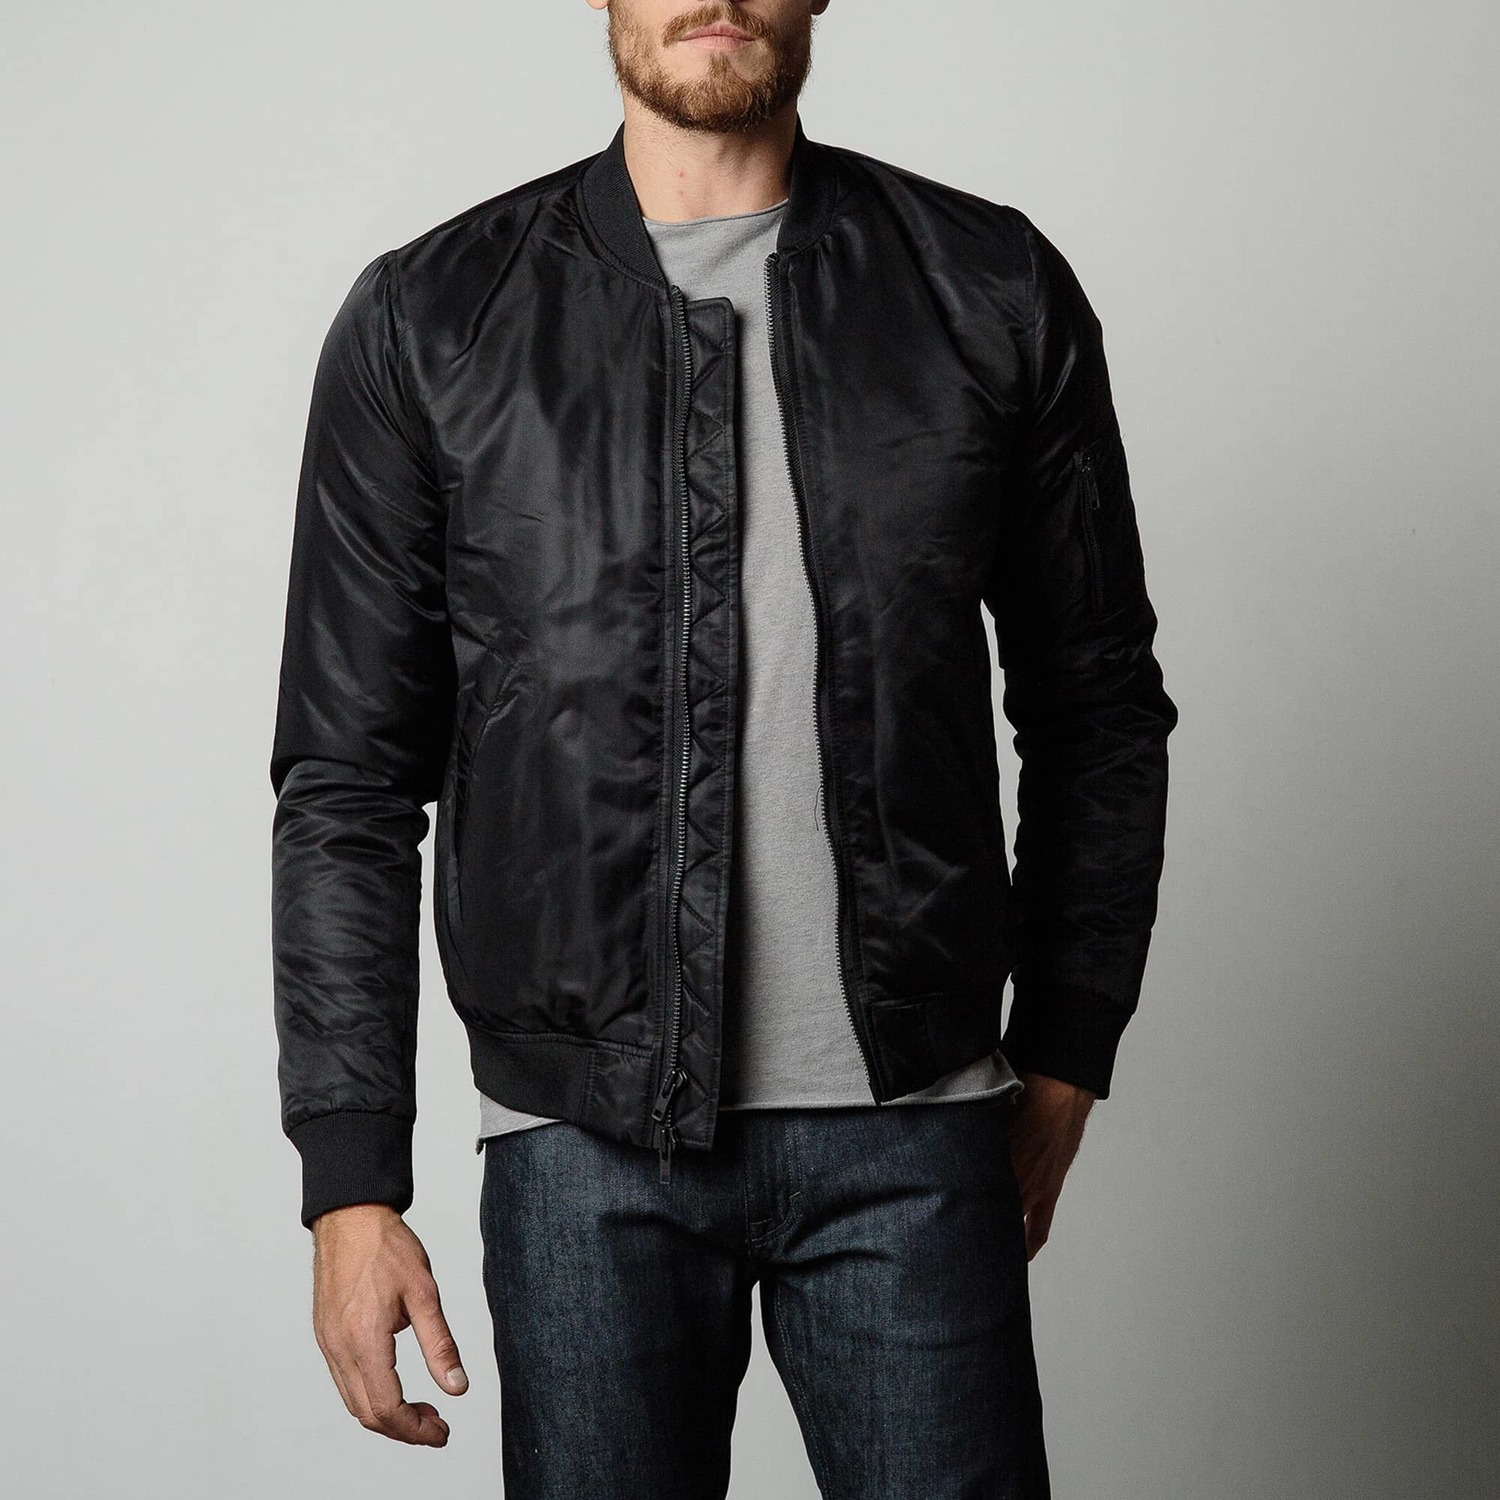 Mens Nylon Bomber Jacket With Black Zippers In Black $125 | DSTLD